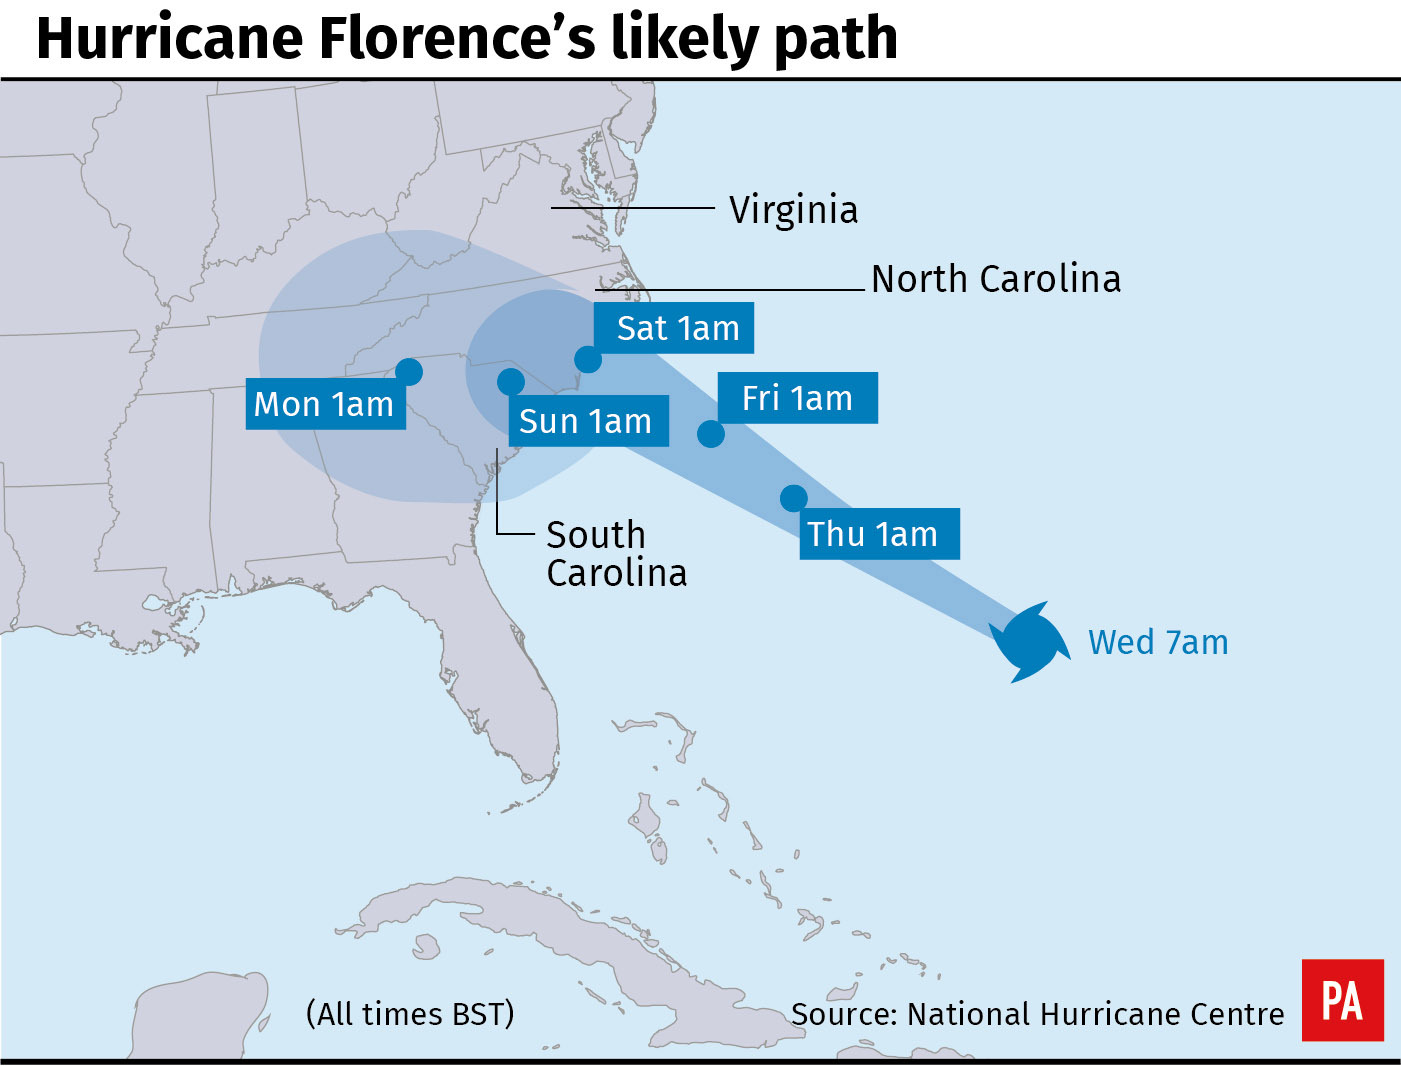 Hurricane Florence Loses Steam, but Shifting Forecast Predicts Huge Rainfall